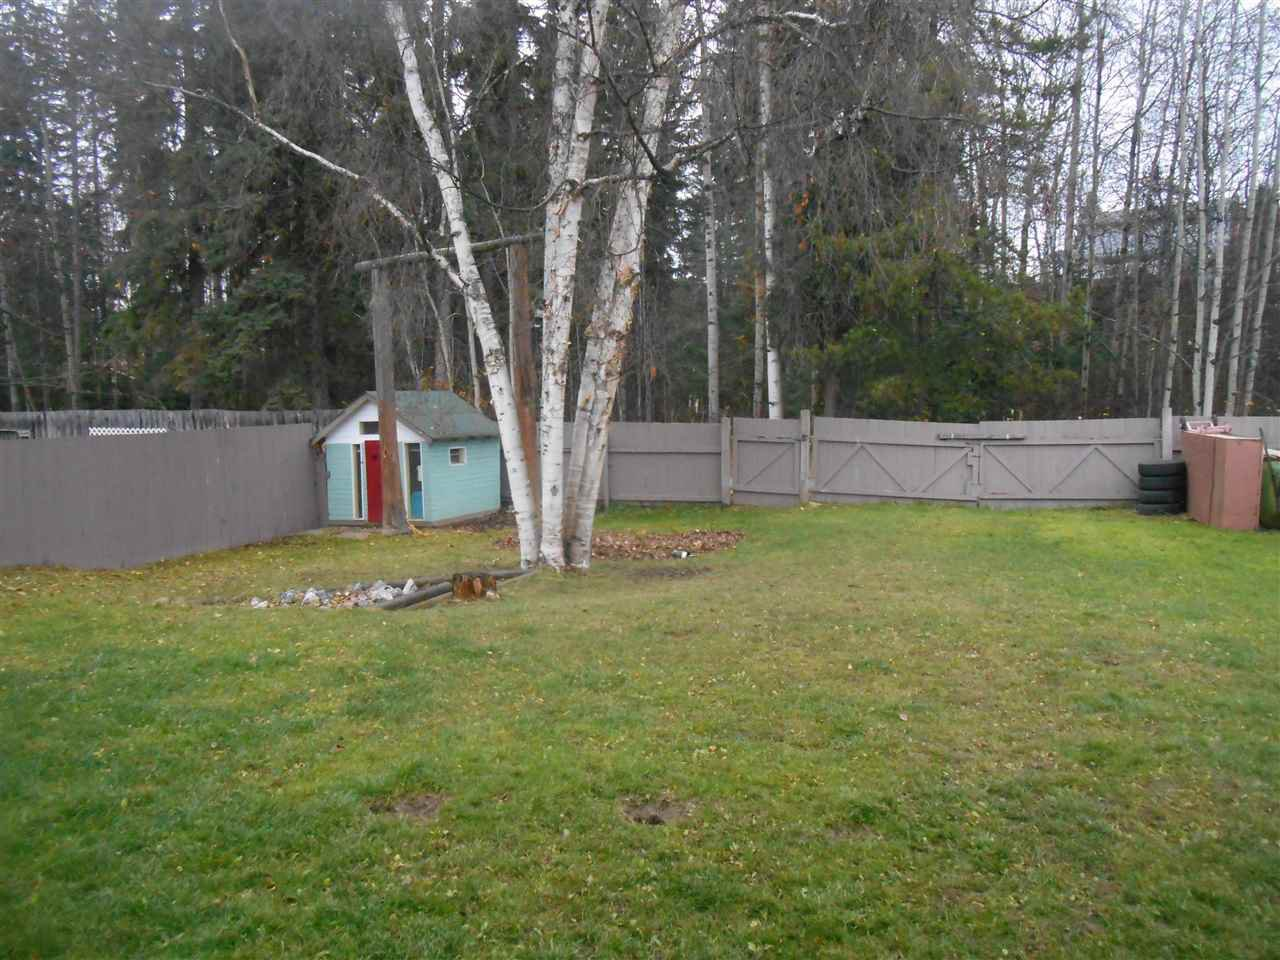 Photo 10: Photos: 1955 GARDEN Drive in Prince George: Seymour House for sale (PG City Central (Zone 72))  : MLS®# R2120742